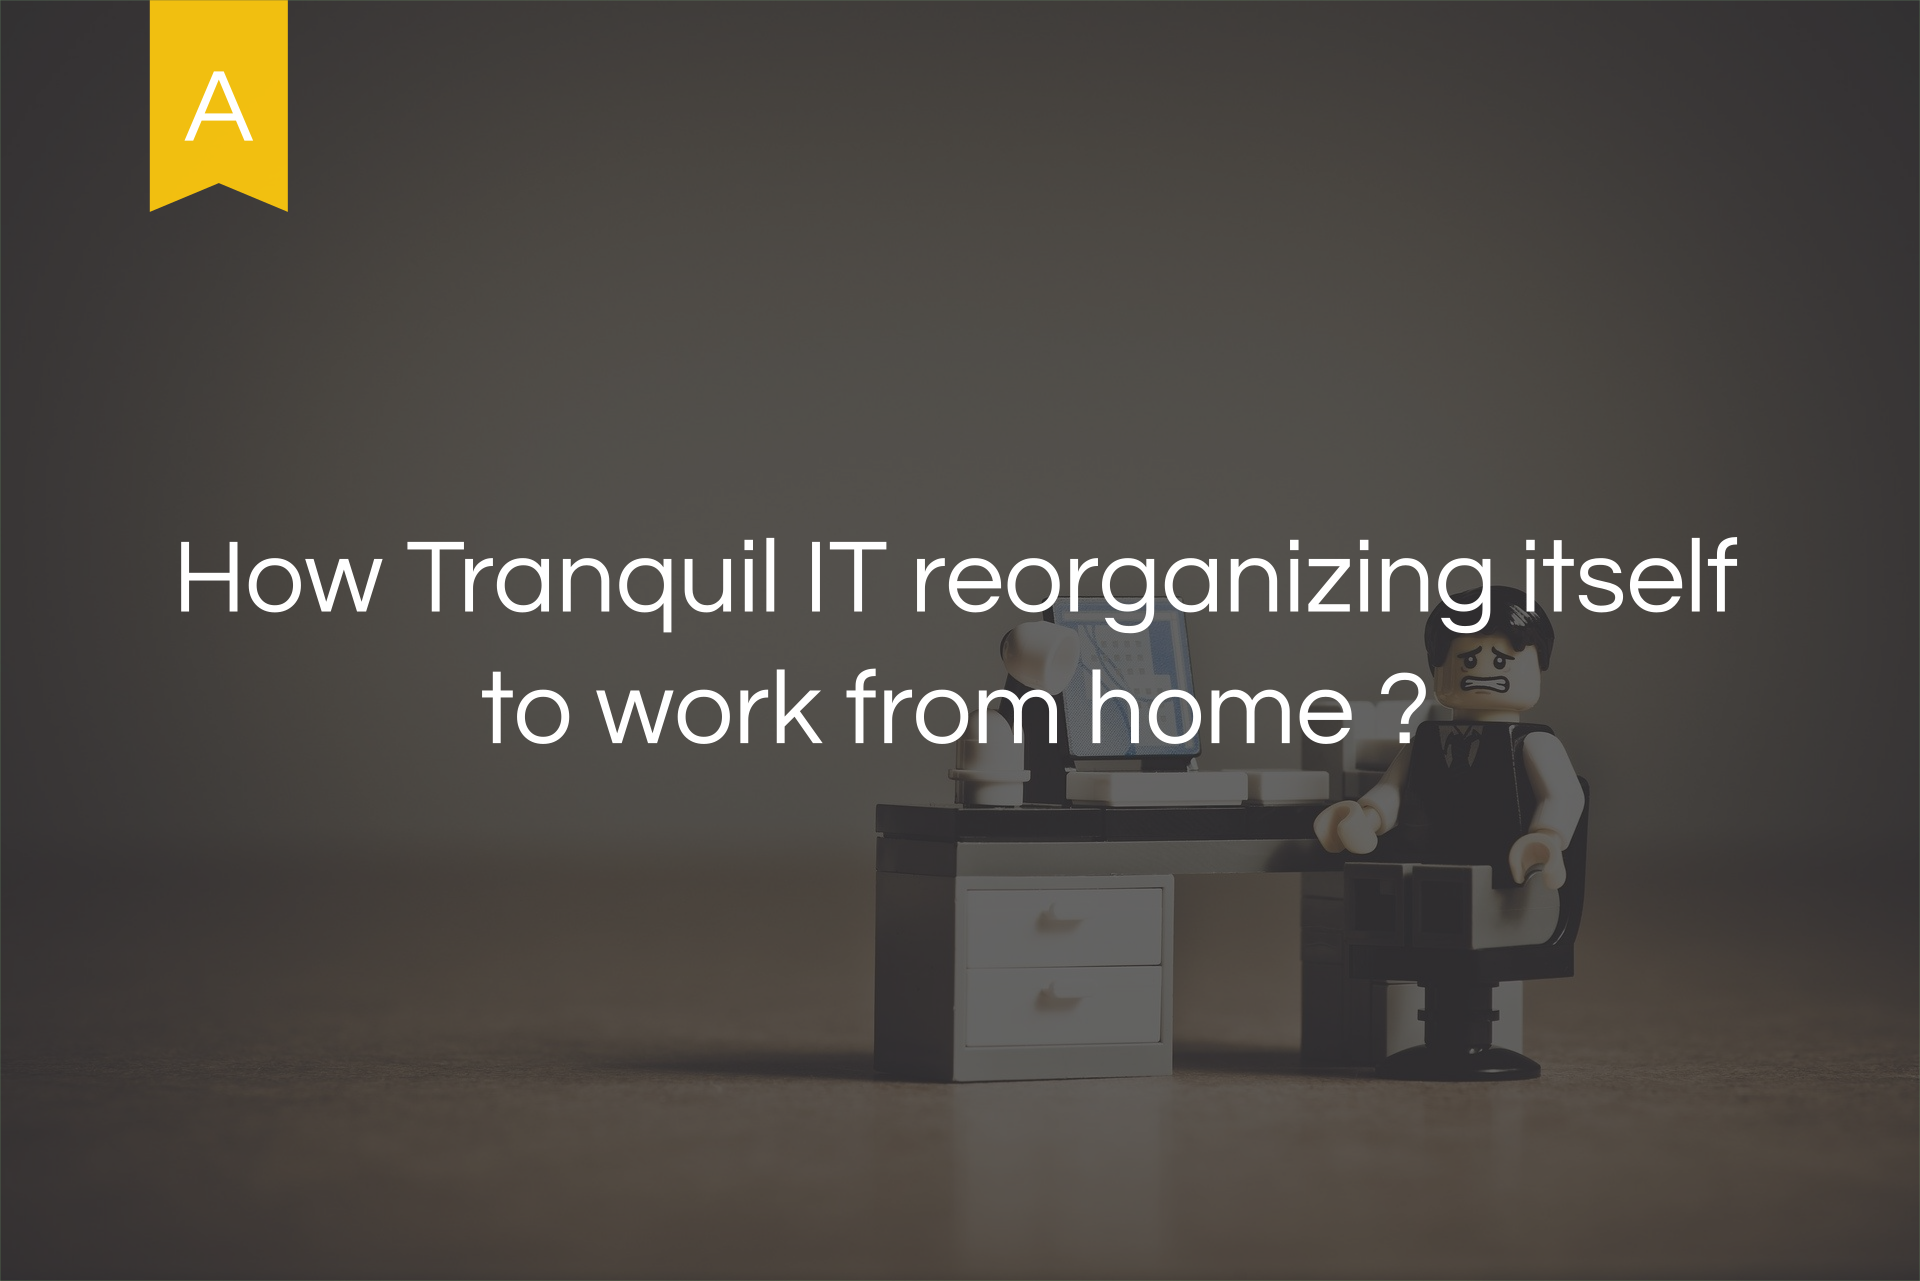 How is Tranquil IT reorganizing itself to work from home?